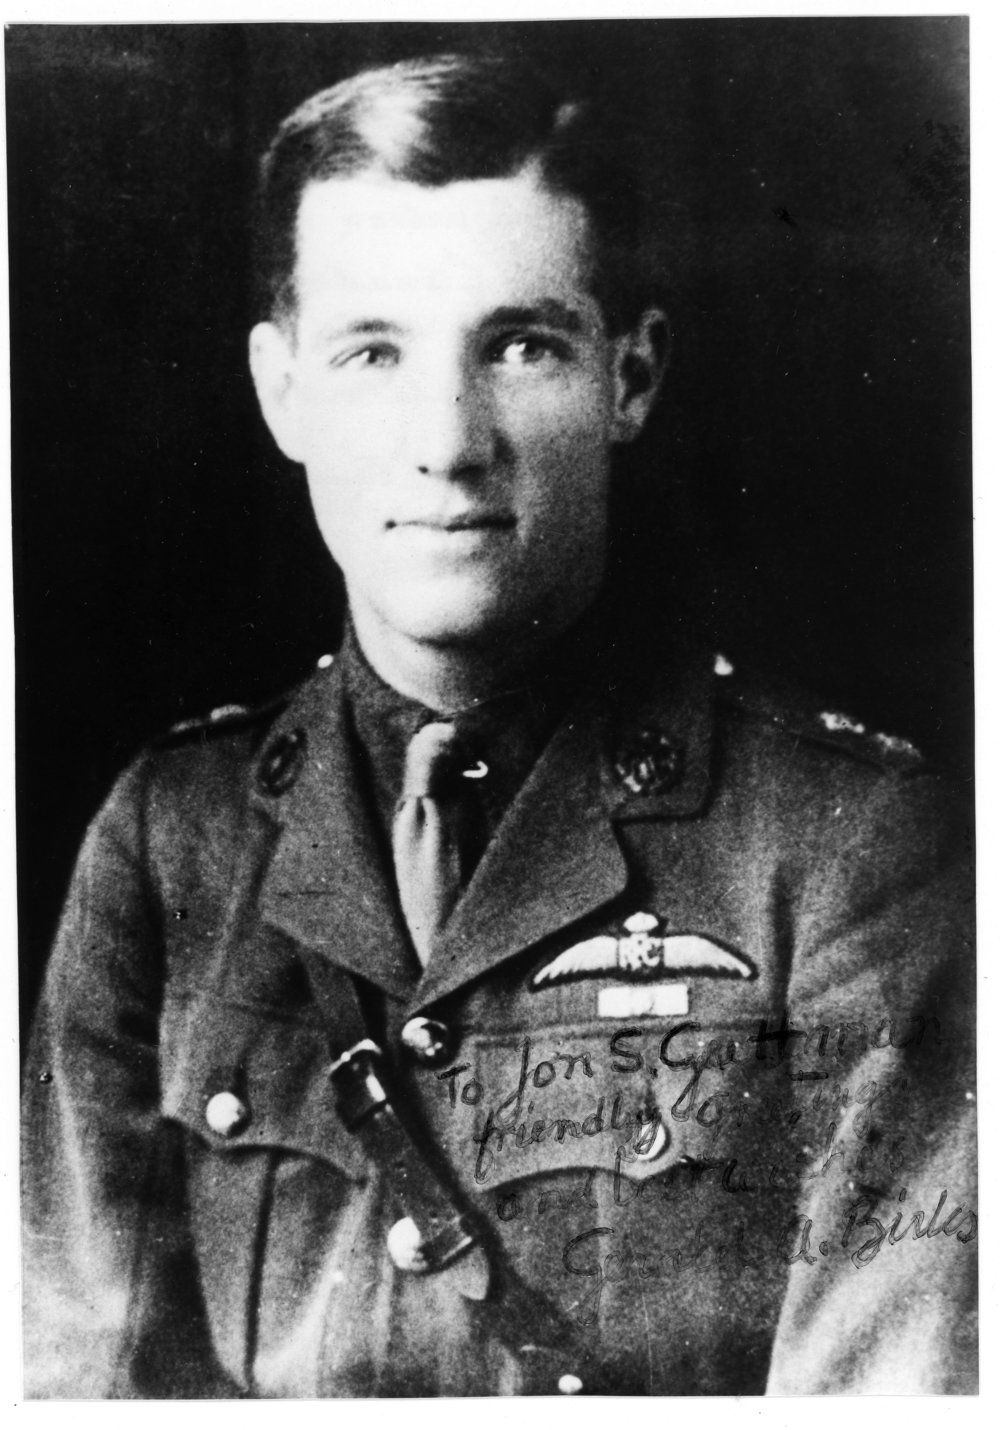 Second Lieutenant Gerald Alfred Birks, shortly after obtaining his flight certification in the Royal Flying Corps. The son of Canadian jeweller Henry Birks, Gerald would master the Sopwith Camel in short order. But aerial dogfights were not Birks' first brush with danger. Having enlisted with the Black Watch's 73rd Battalion in Montreal on August 31, 1915, he would be wounded at the Battle of the Somme on July 1, 1916. (gerald birks via jon guttman)